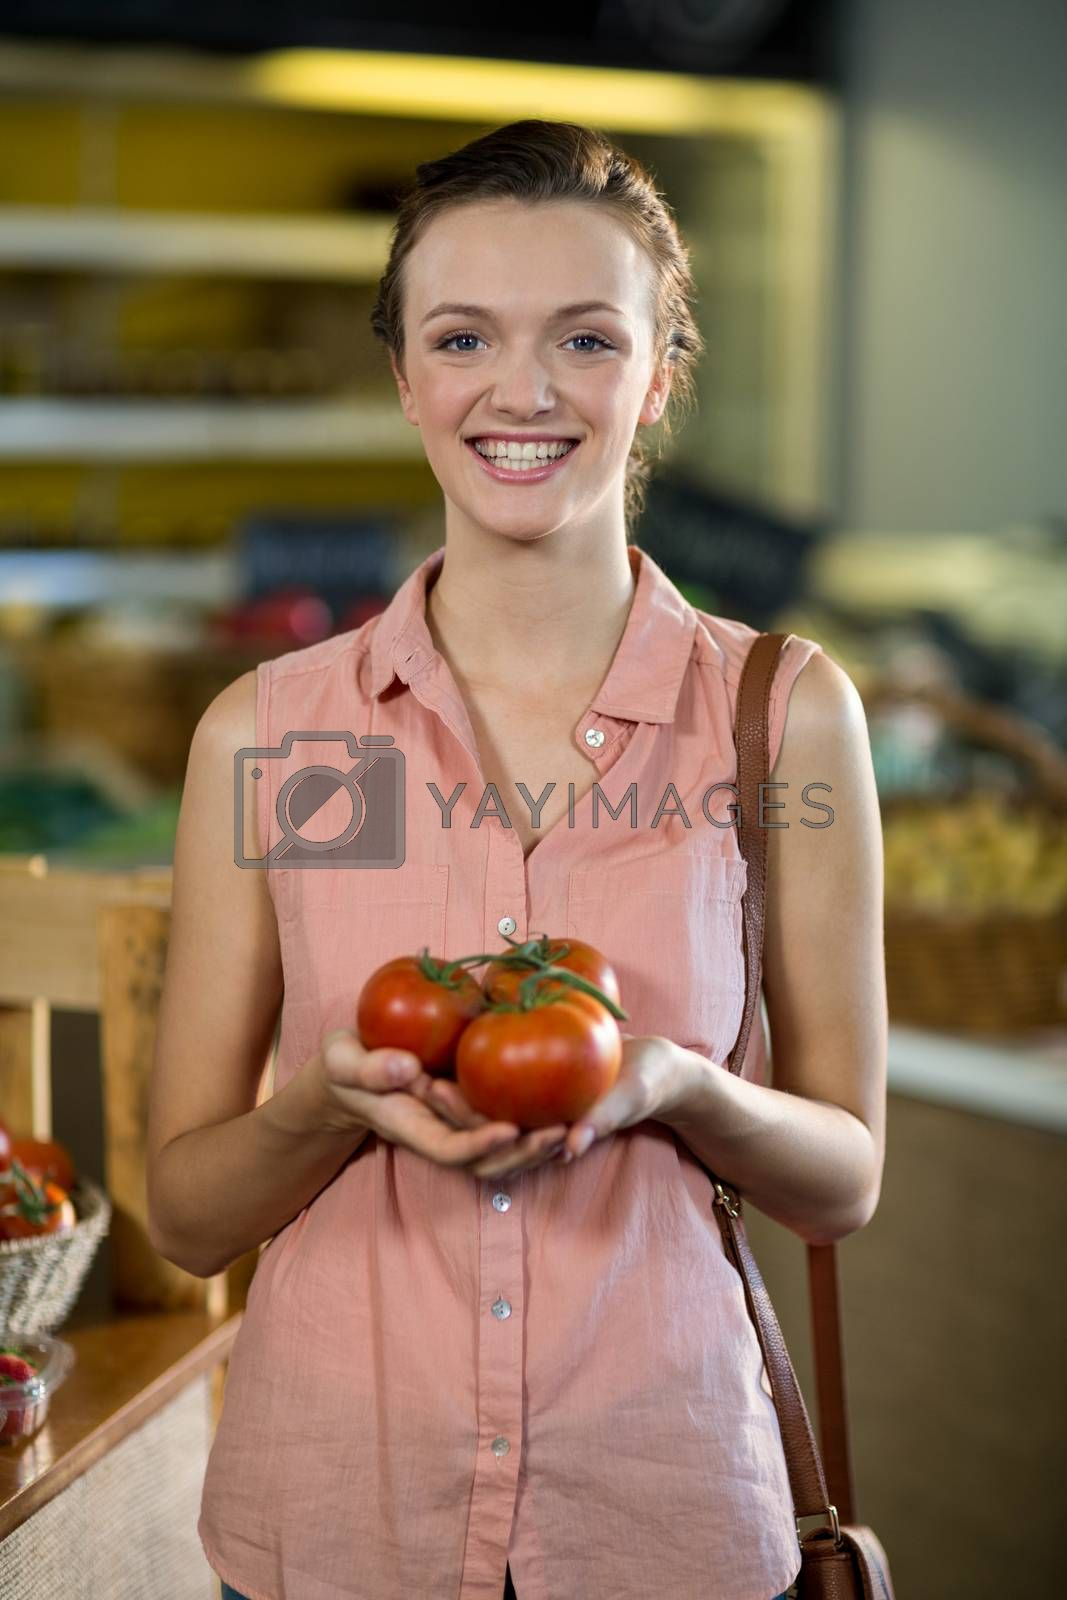 Smiling woman holding tomatoes in the grocery store